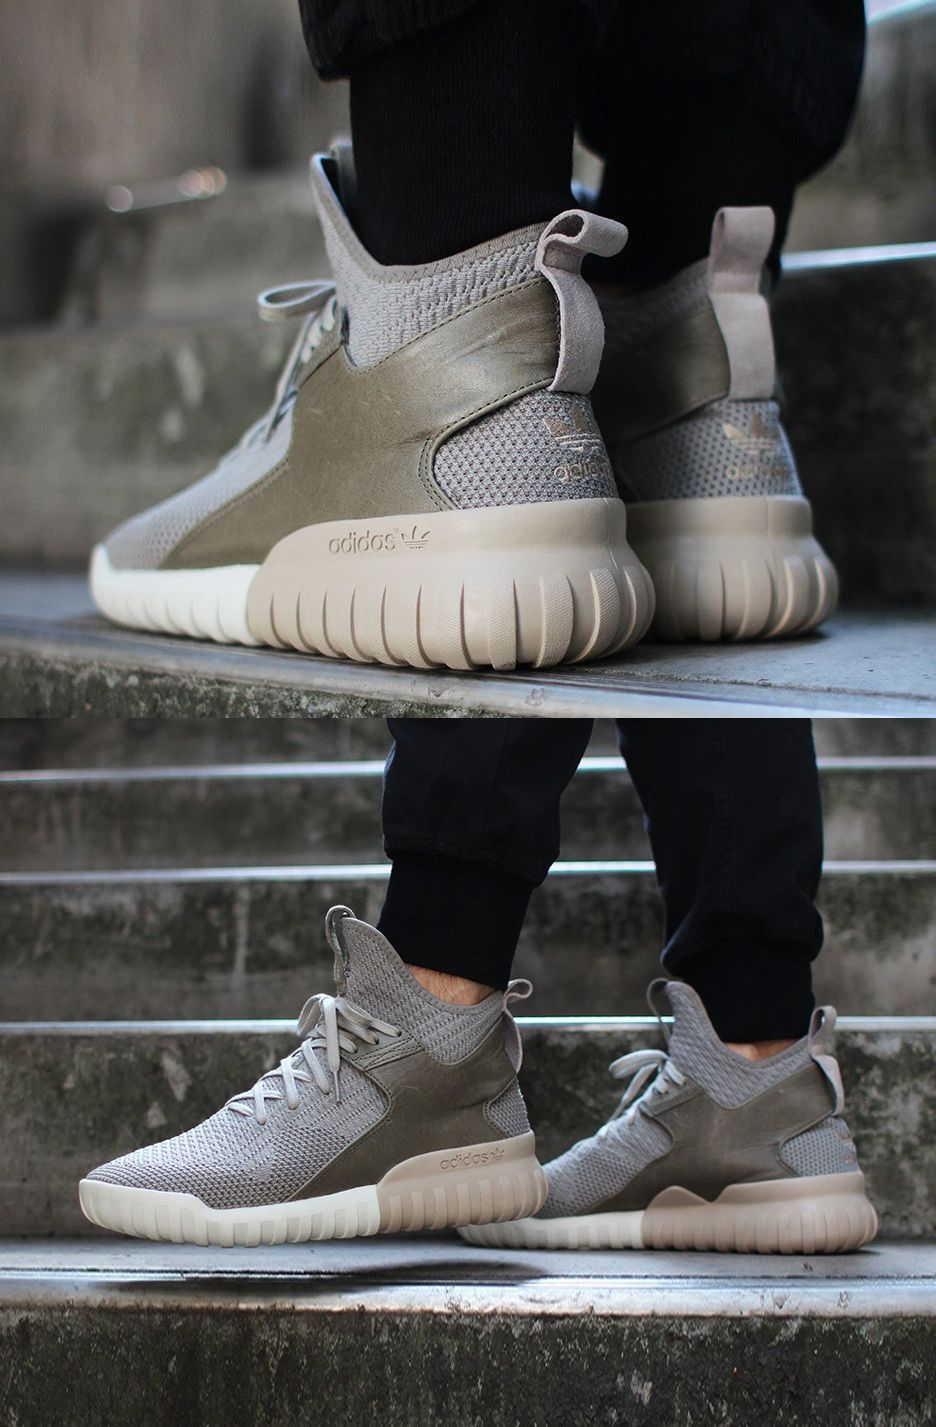 Awesome Stuff Week: Tuesday Reviewsday, adidas Tubular X